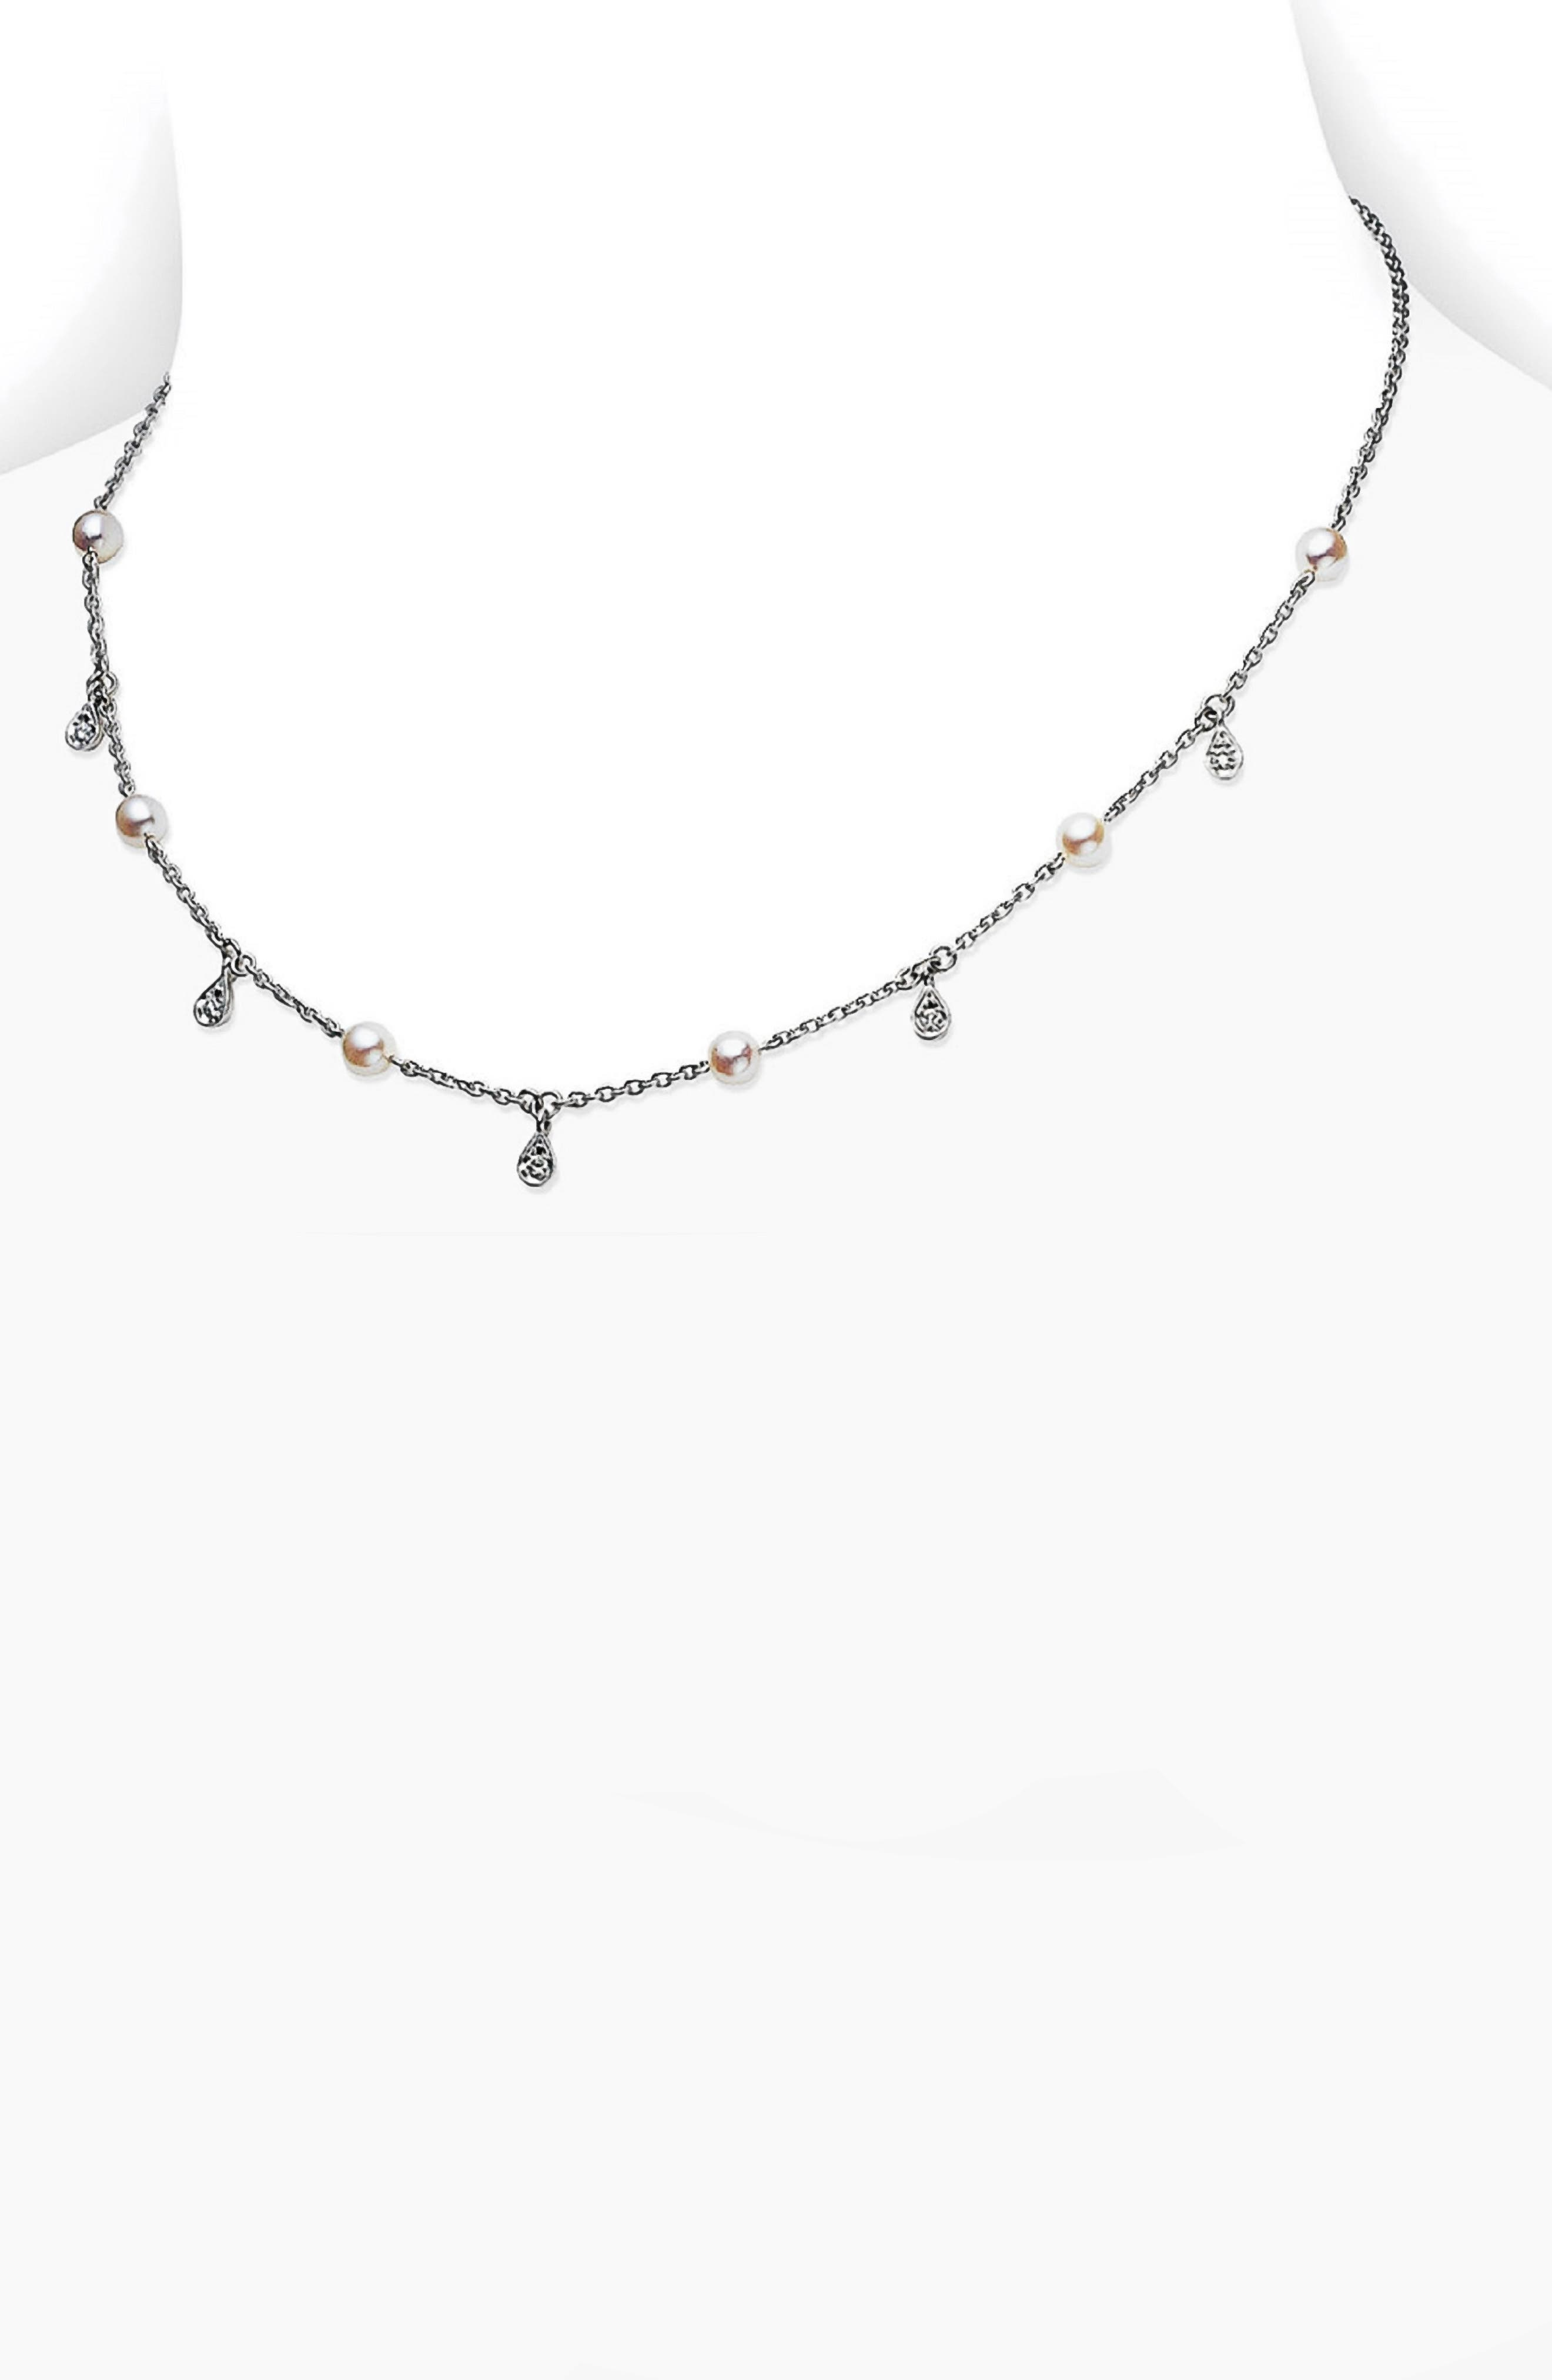 Akoya Cultured Pearl & Diamond Station Necklace